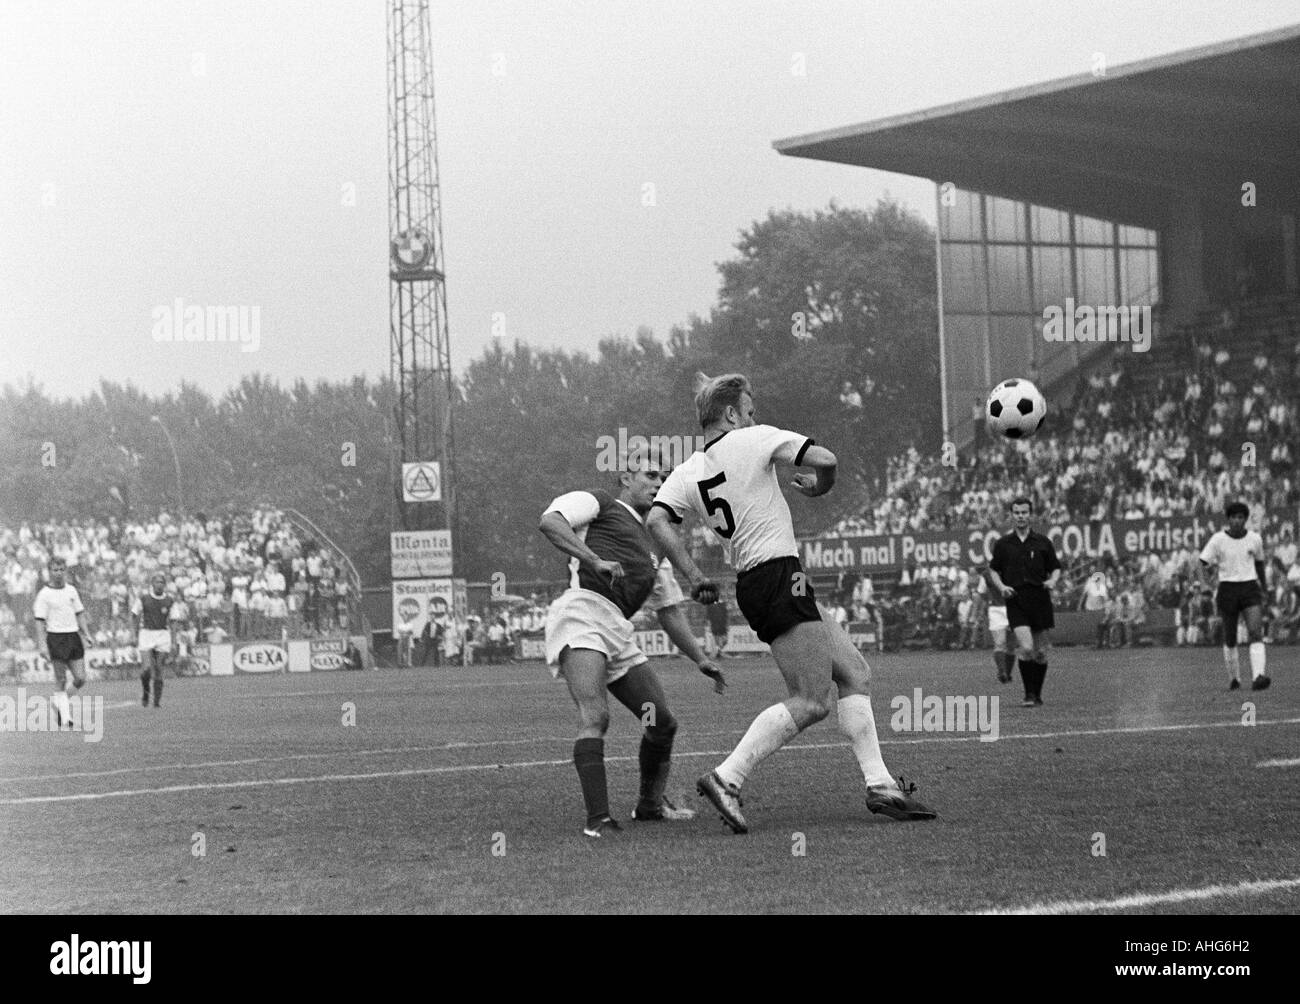 football, friendly game, 1969, Stadium an der Hafenstrasse in Essen, Rot-Weiss Essen versus Eintracht Frankfurt 2:1, scene of the match, duel between Helmut Littek (RWE) left and Lothar Schaemer (Frankfurt, 5) - Stock Image